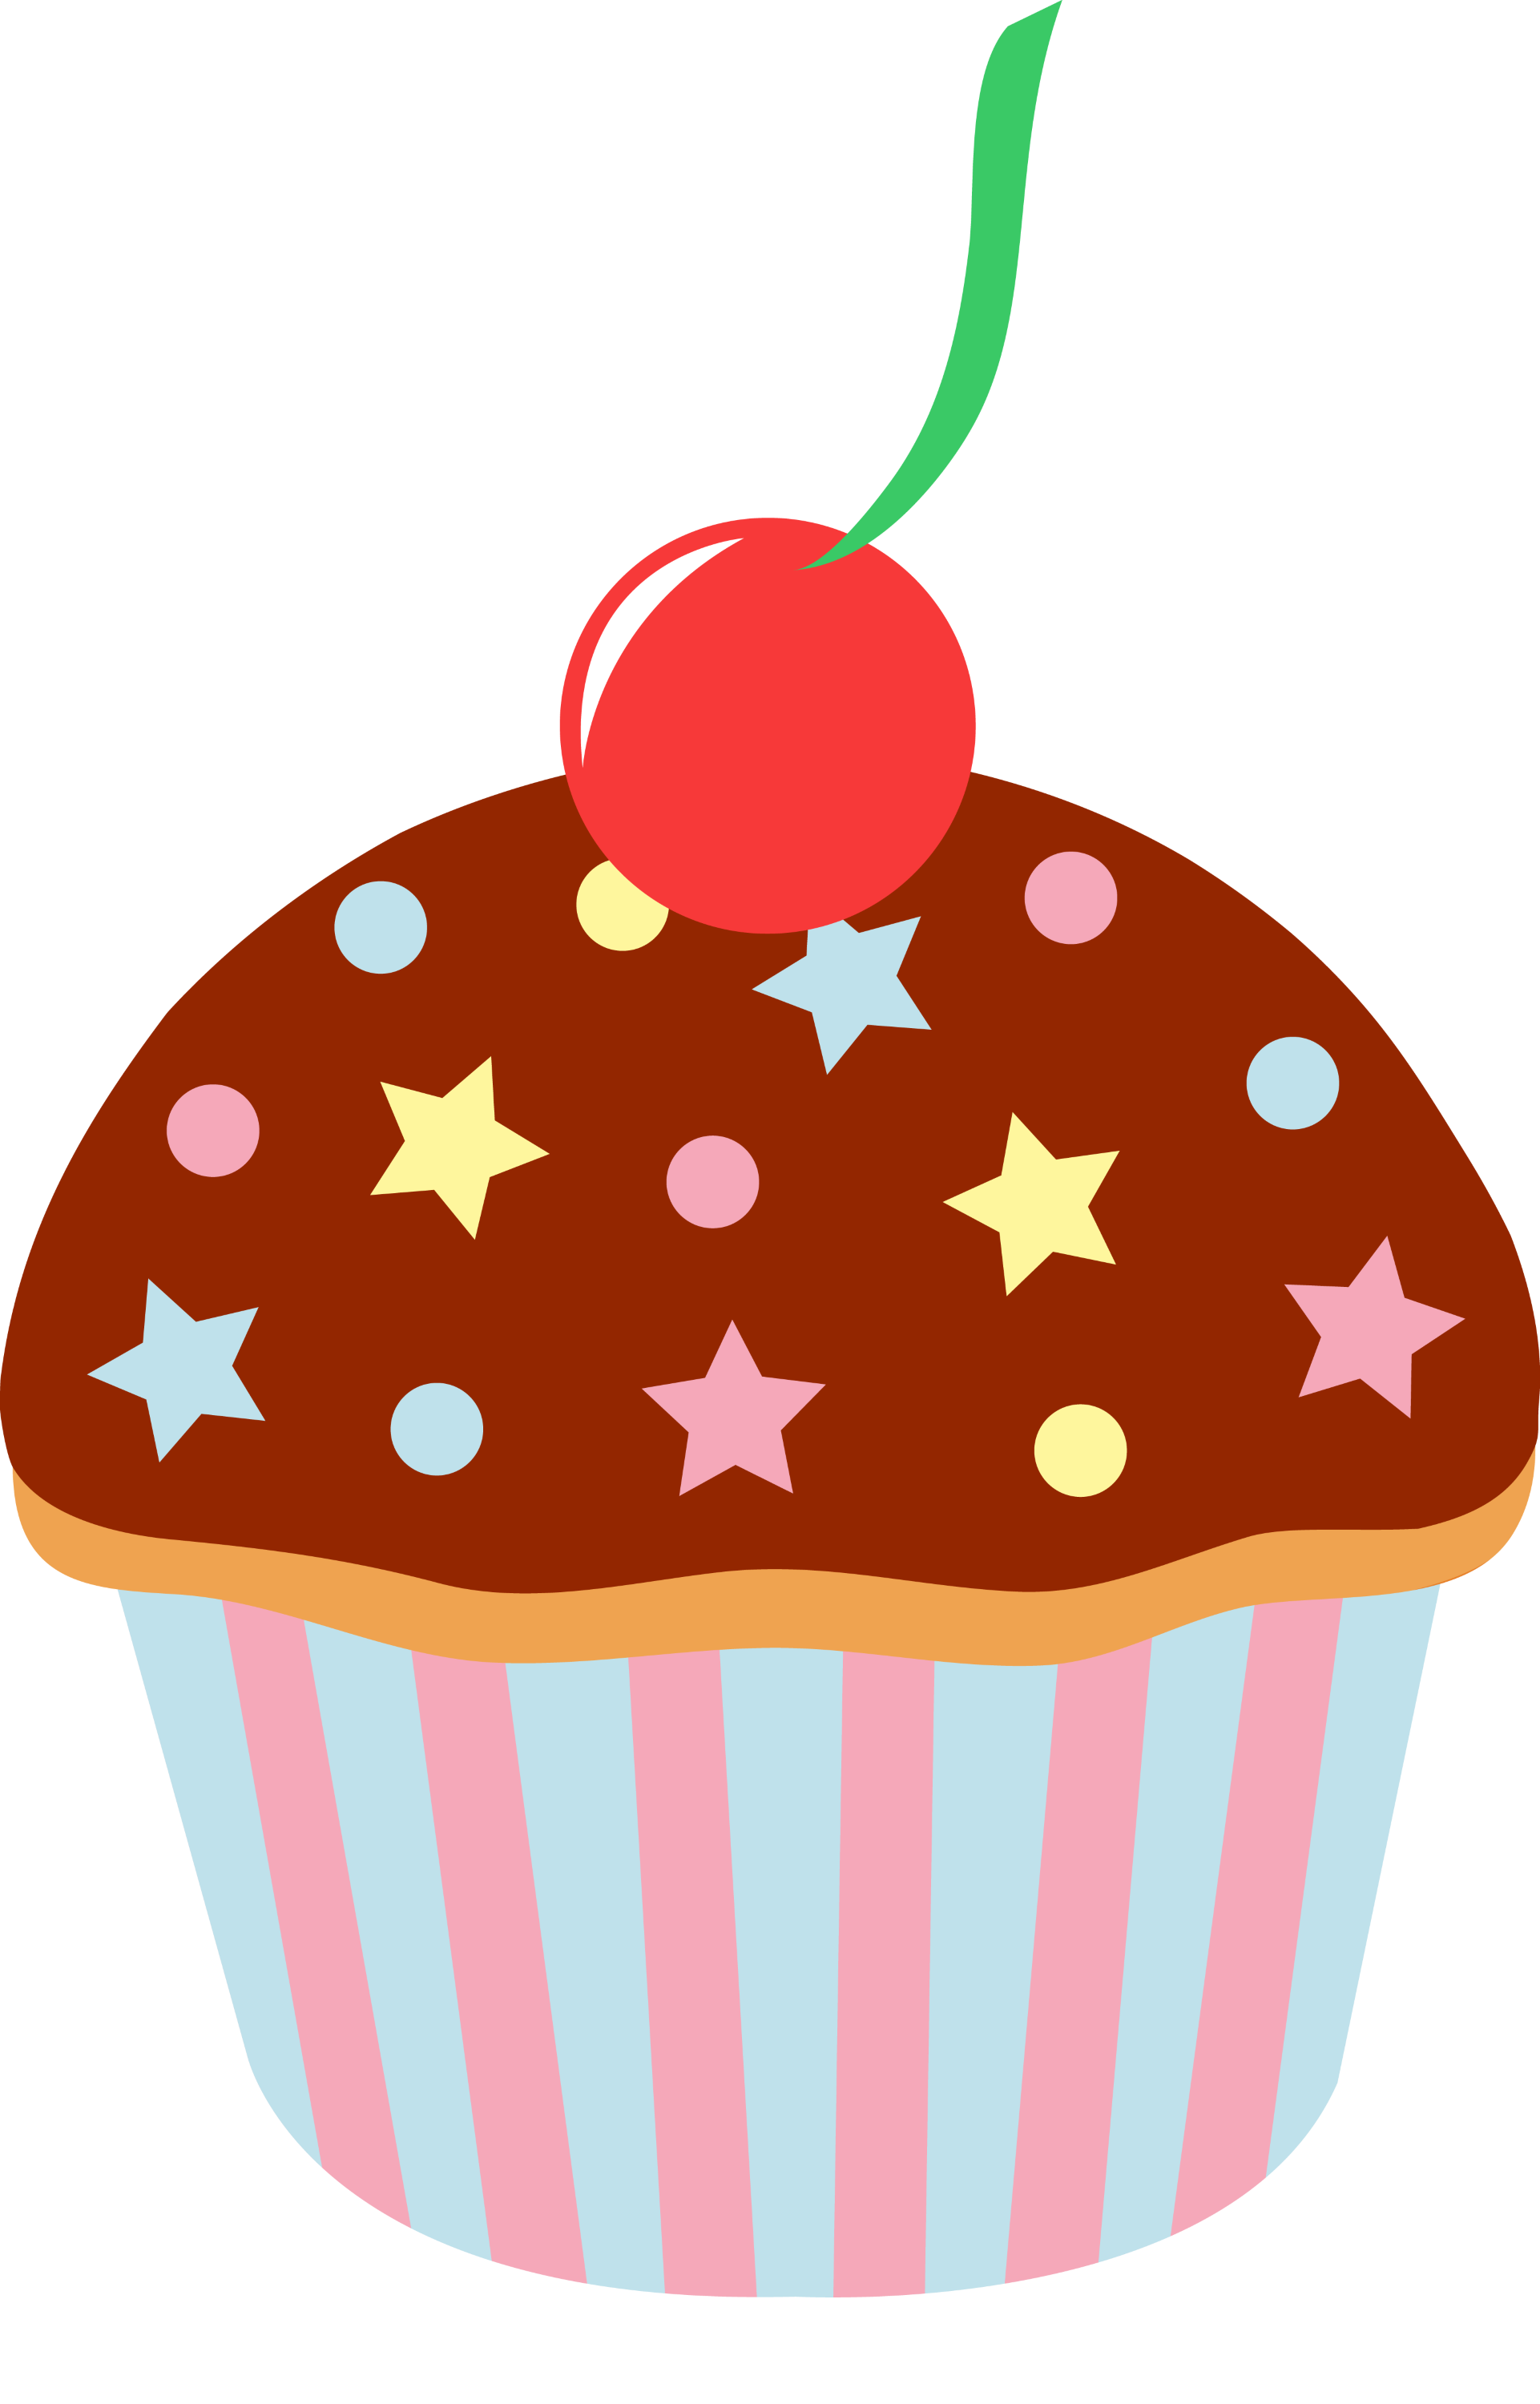 Free Cupcake Clipart : Chocolate Cupcake With Sprinkles and Cherry - Free Clip Art